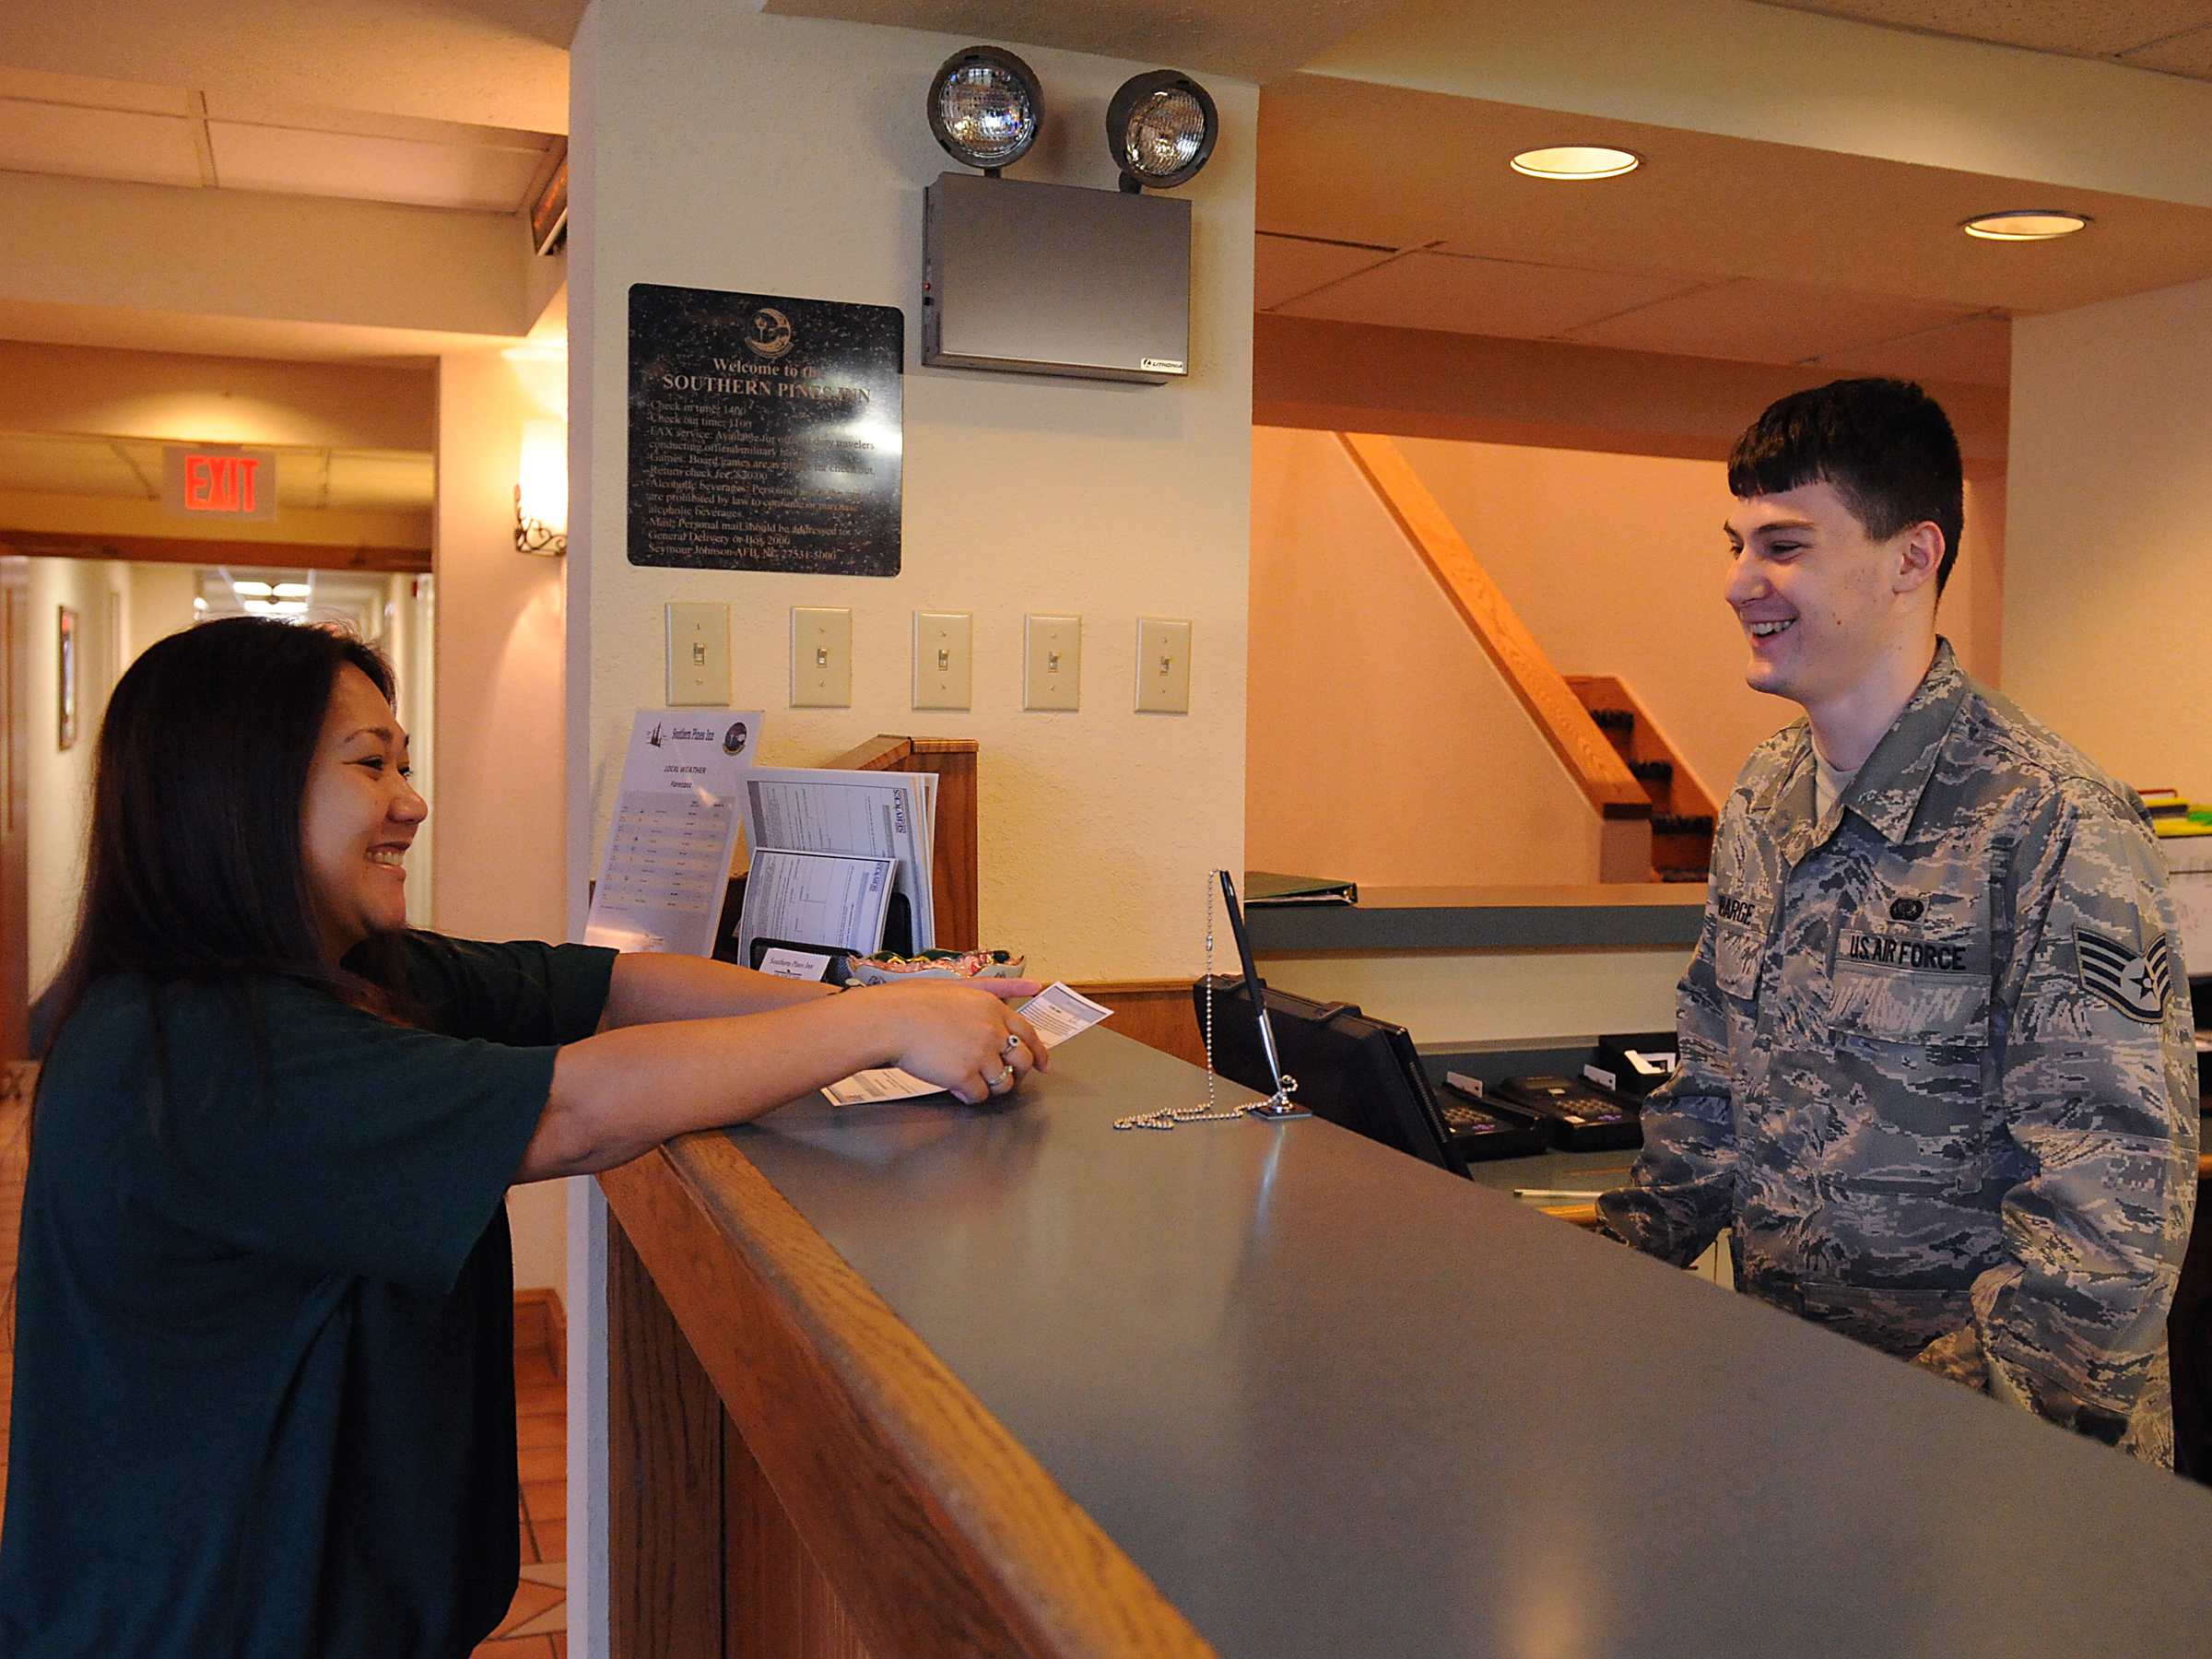 Base lodging earns high marks during inspection